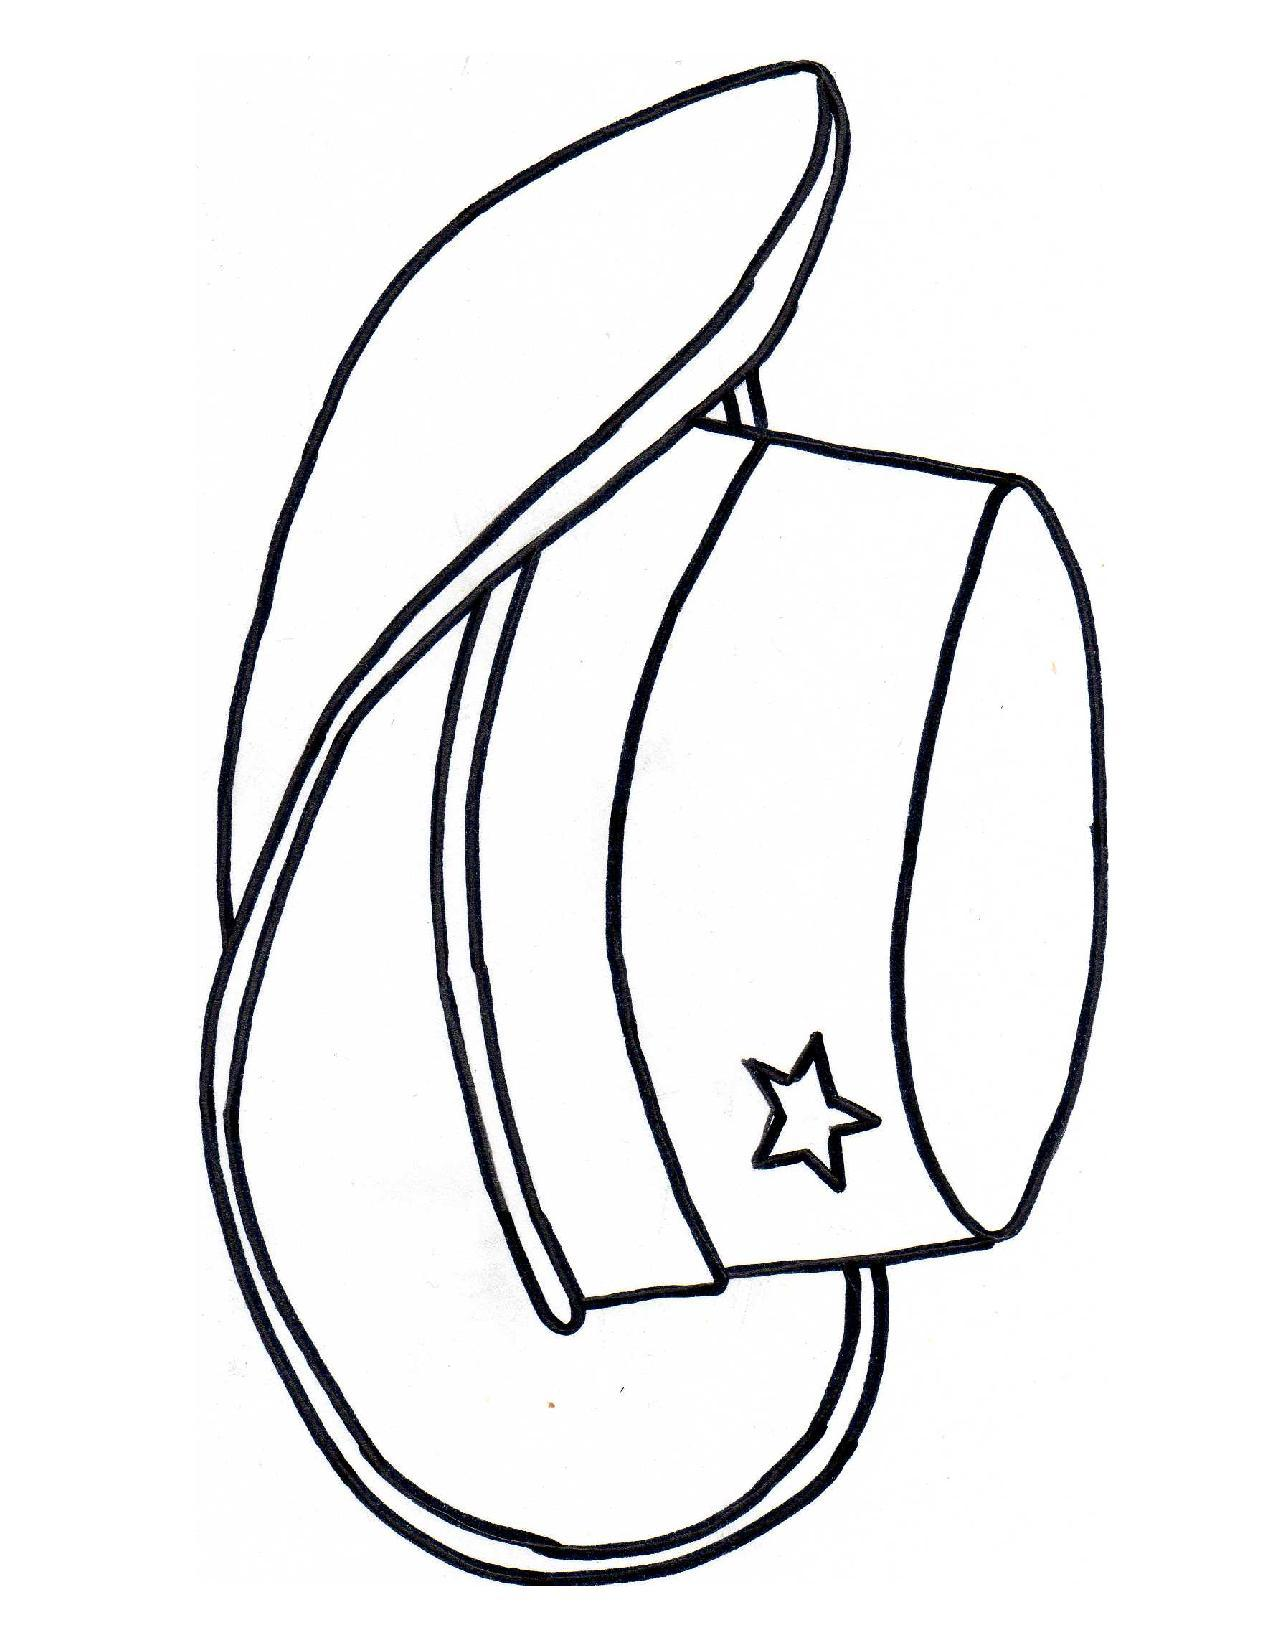 cowboy hat line drawing at getdrawings com free for personal use rh getdrawings com